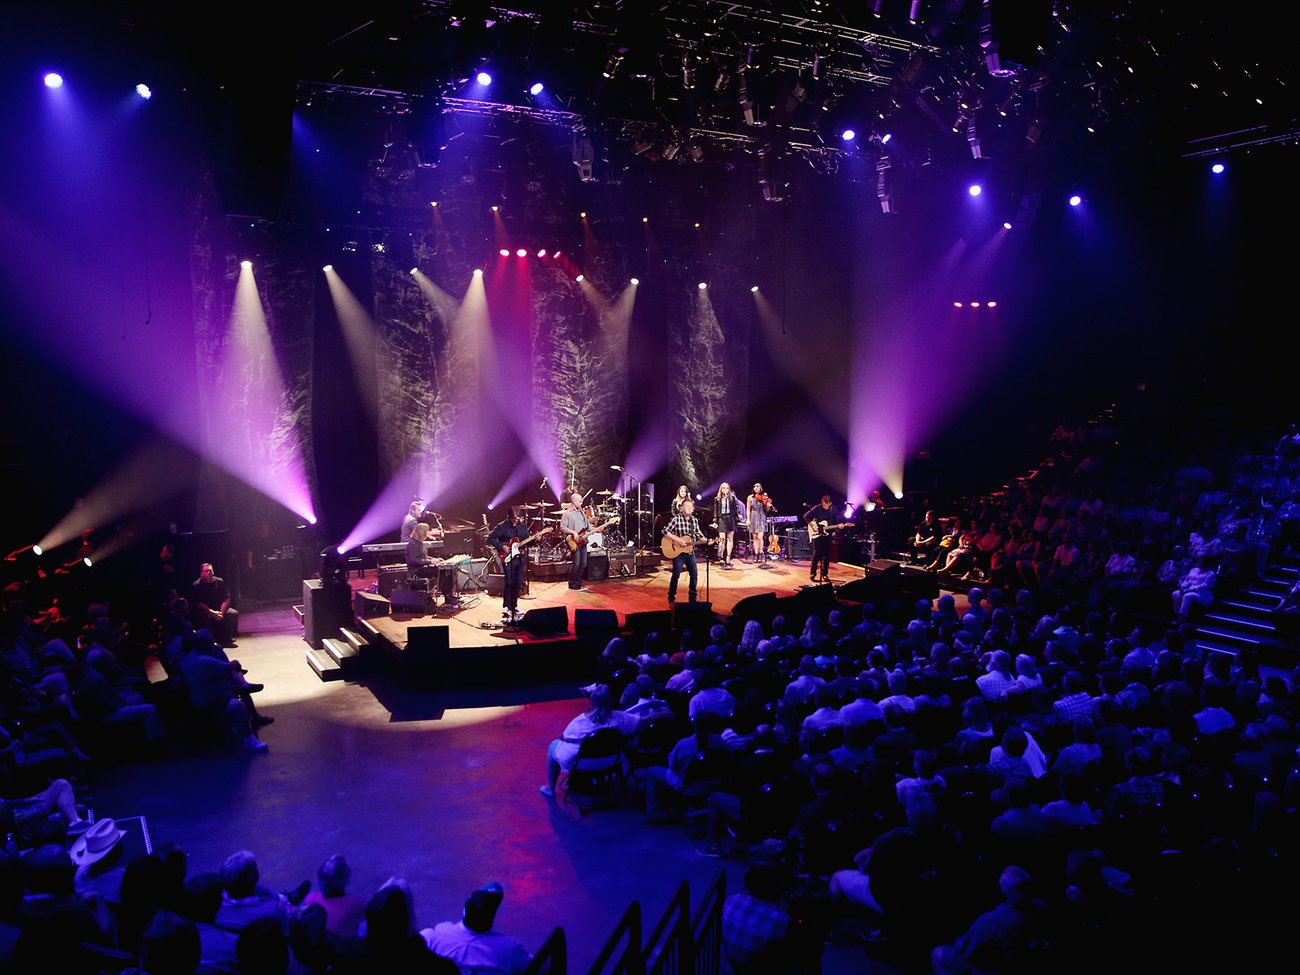 ACL Live at the Moody Theater in Austin